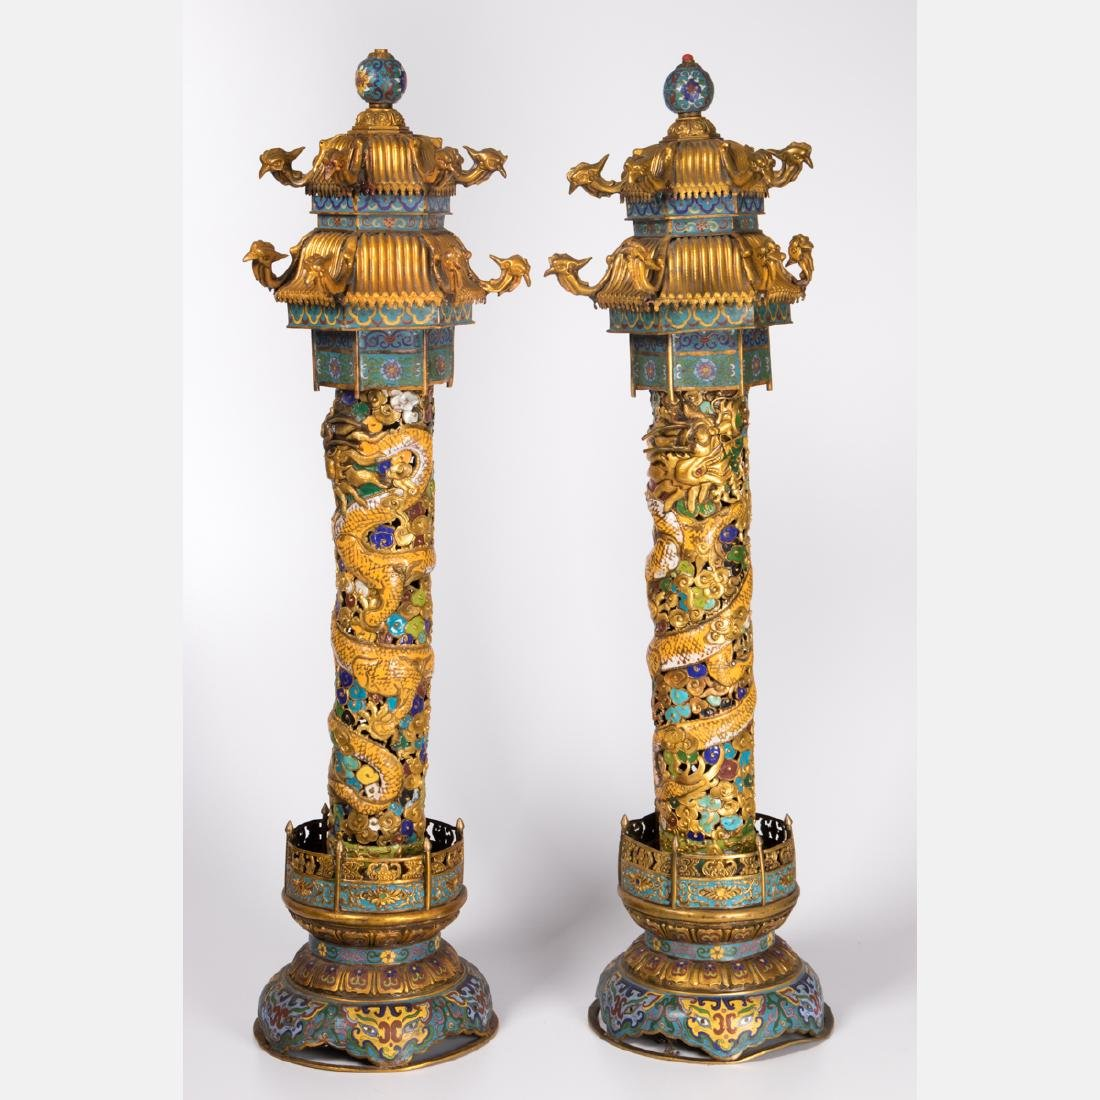 A Pair of Chinese Cloisonné and Gilt Brass Pagoda Form